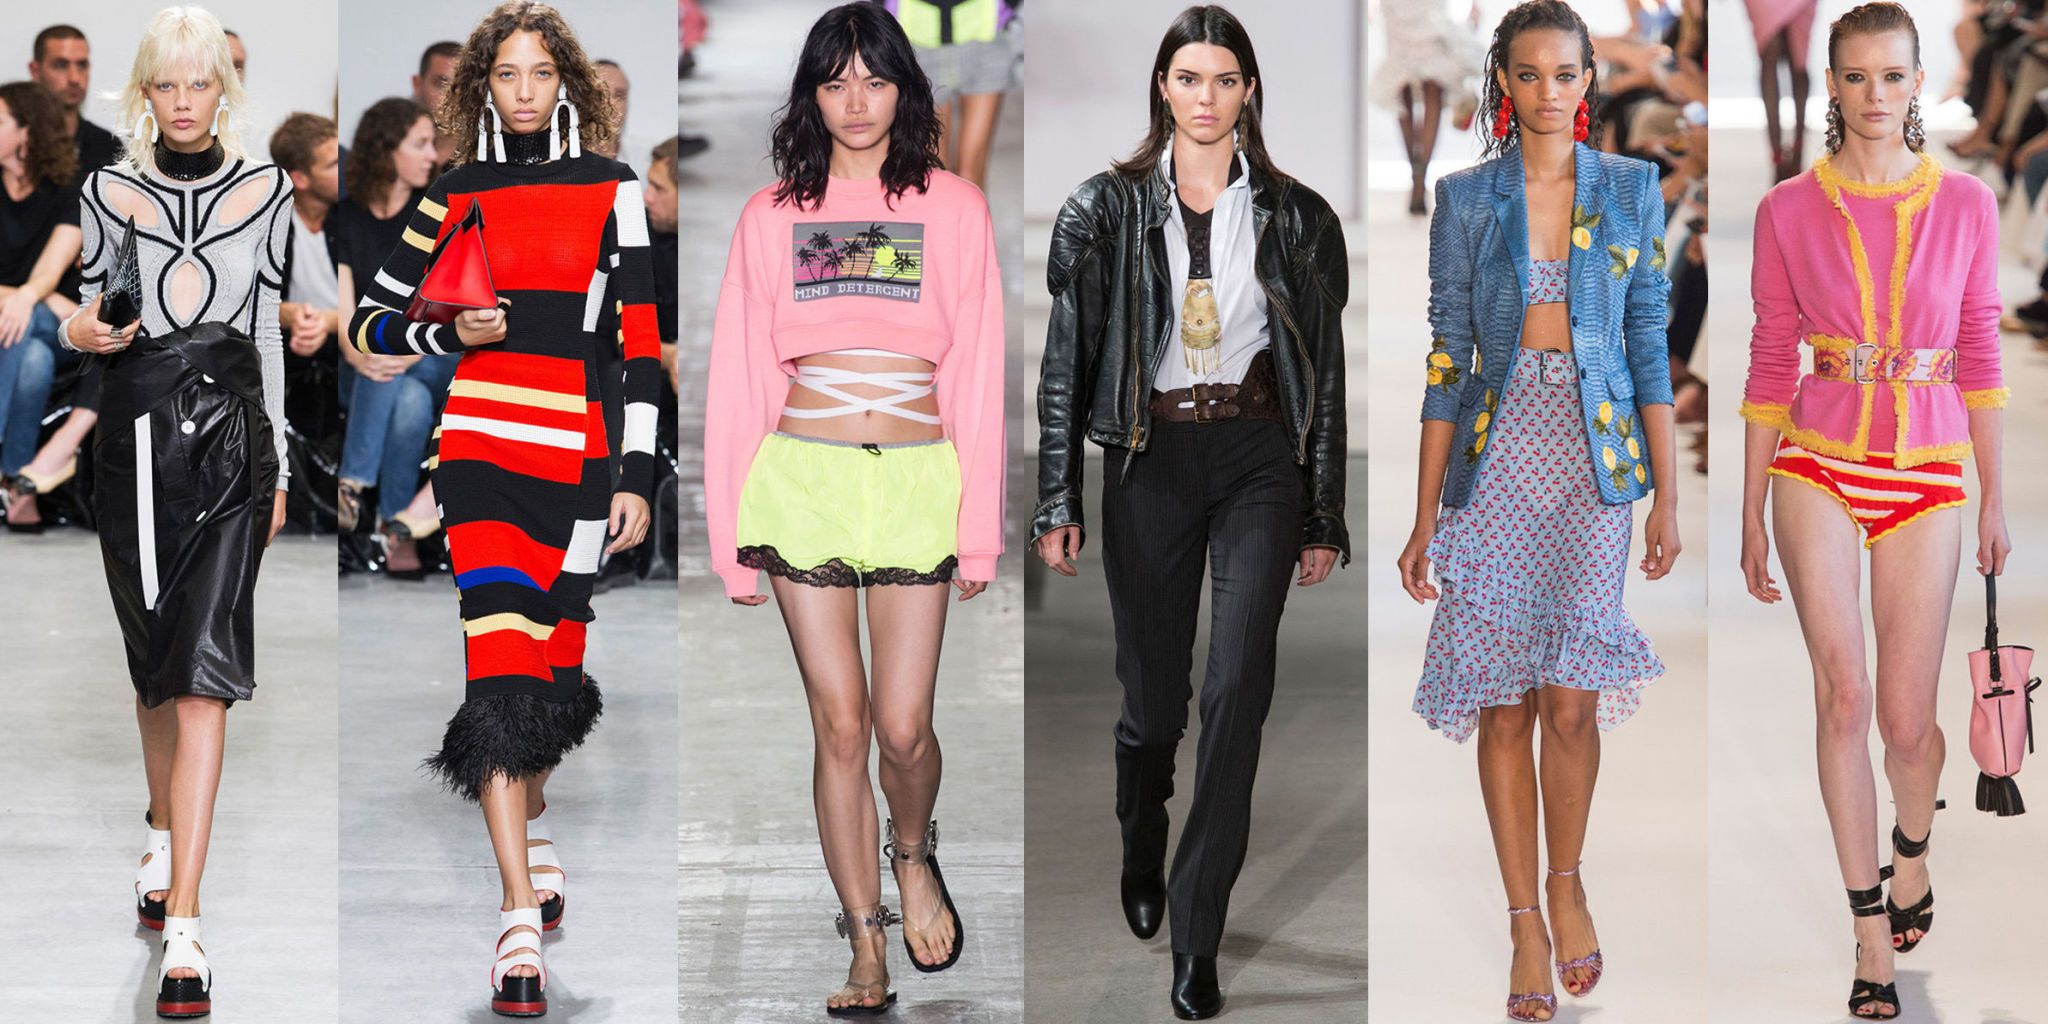 Awesome All The Looks That Reigned On The Recent Runways. Amazing Ideas